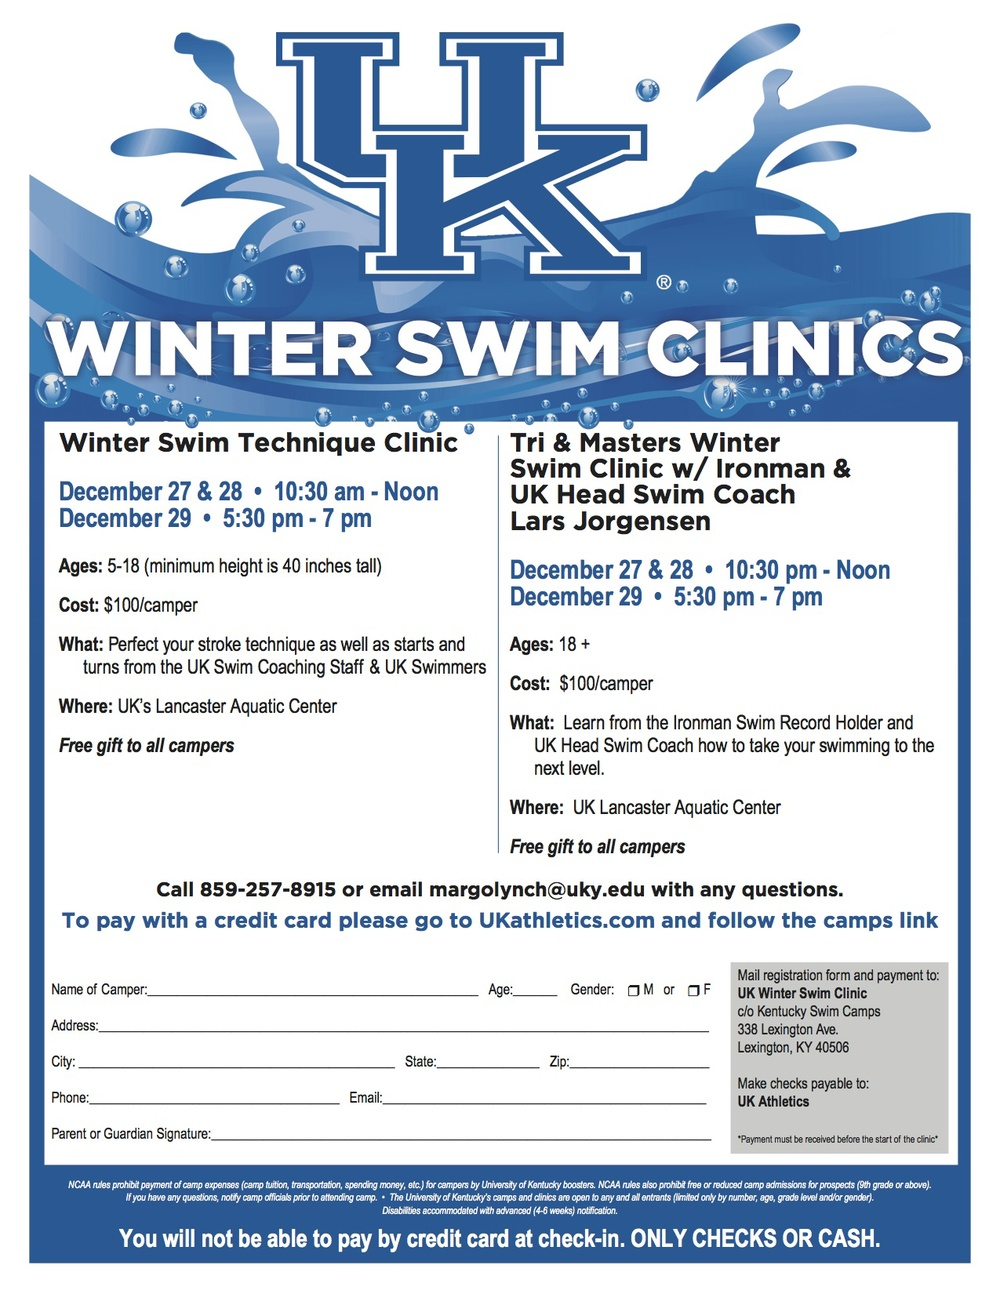 **NKSM TEAM CONTEST - the first swimmer to email Coach Loretta with the UK Coach name and dates of the clinic will win a prize.